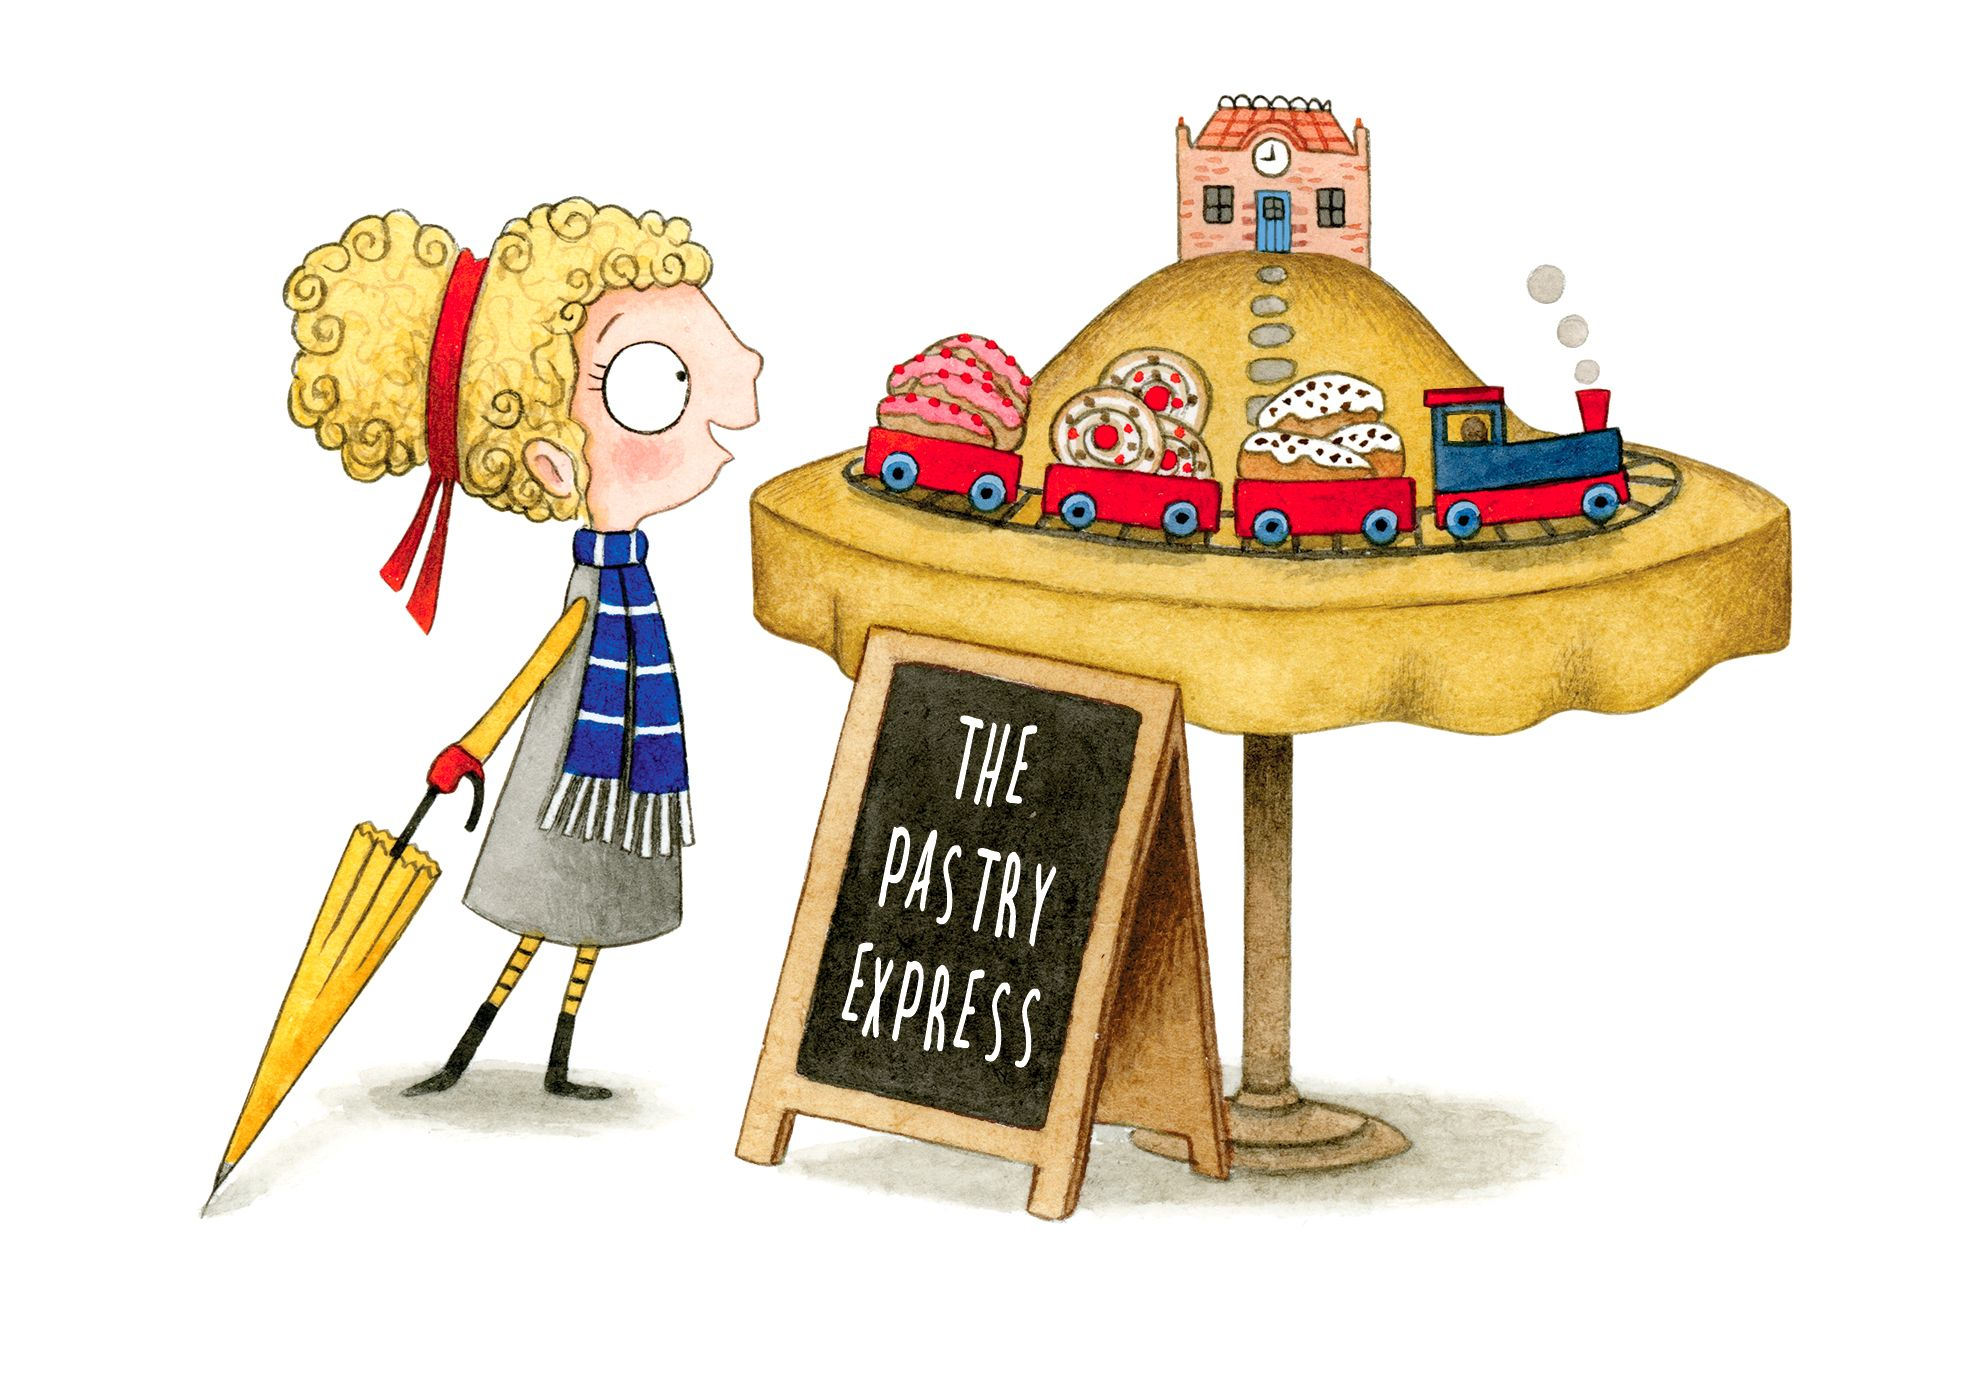 The Pastry Express